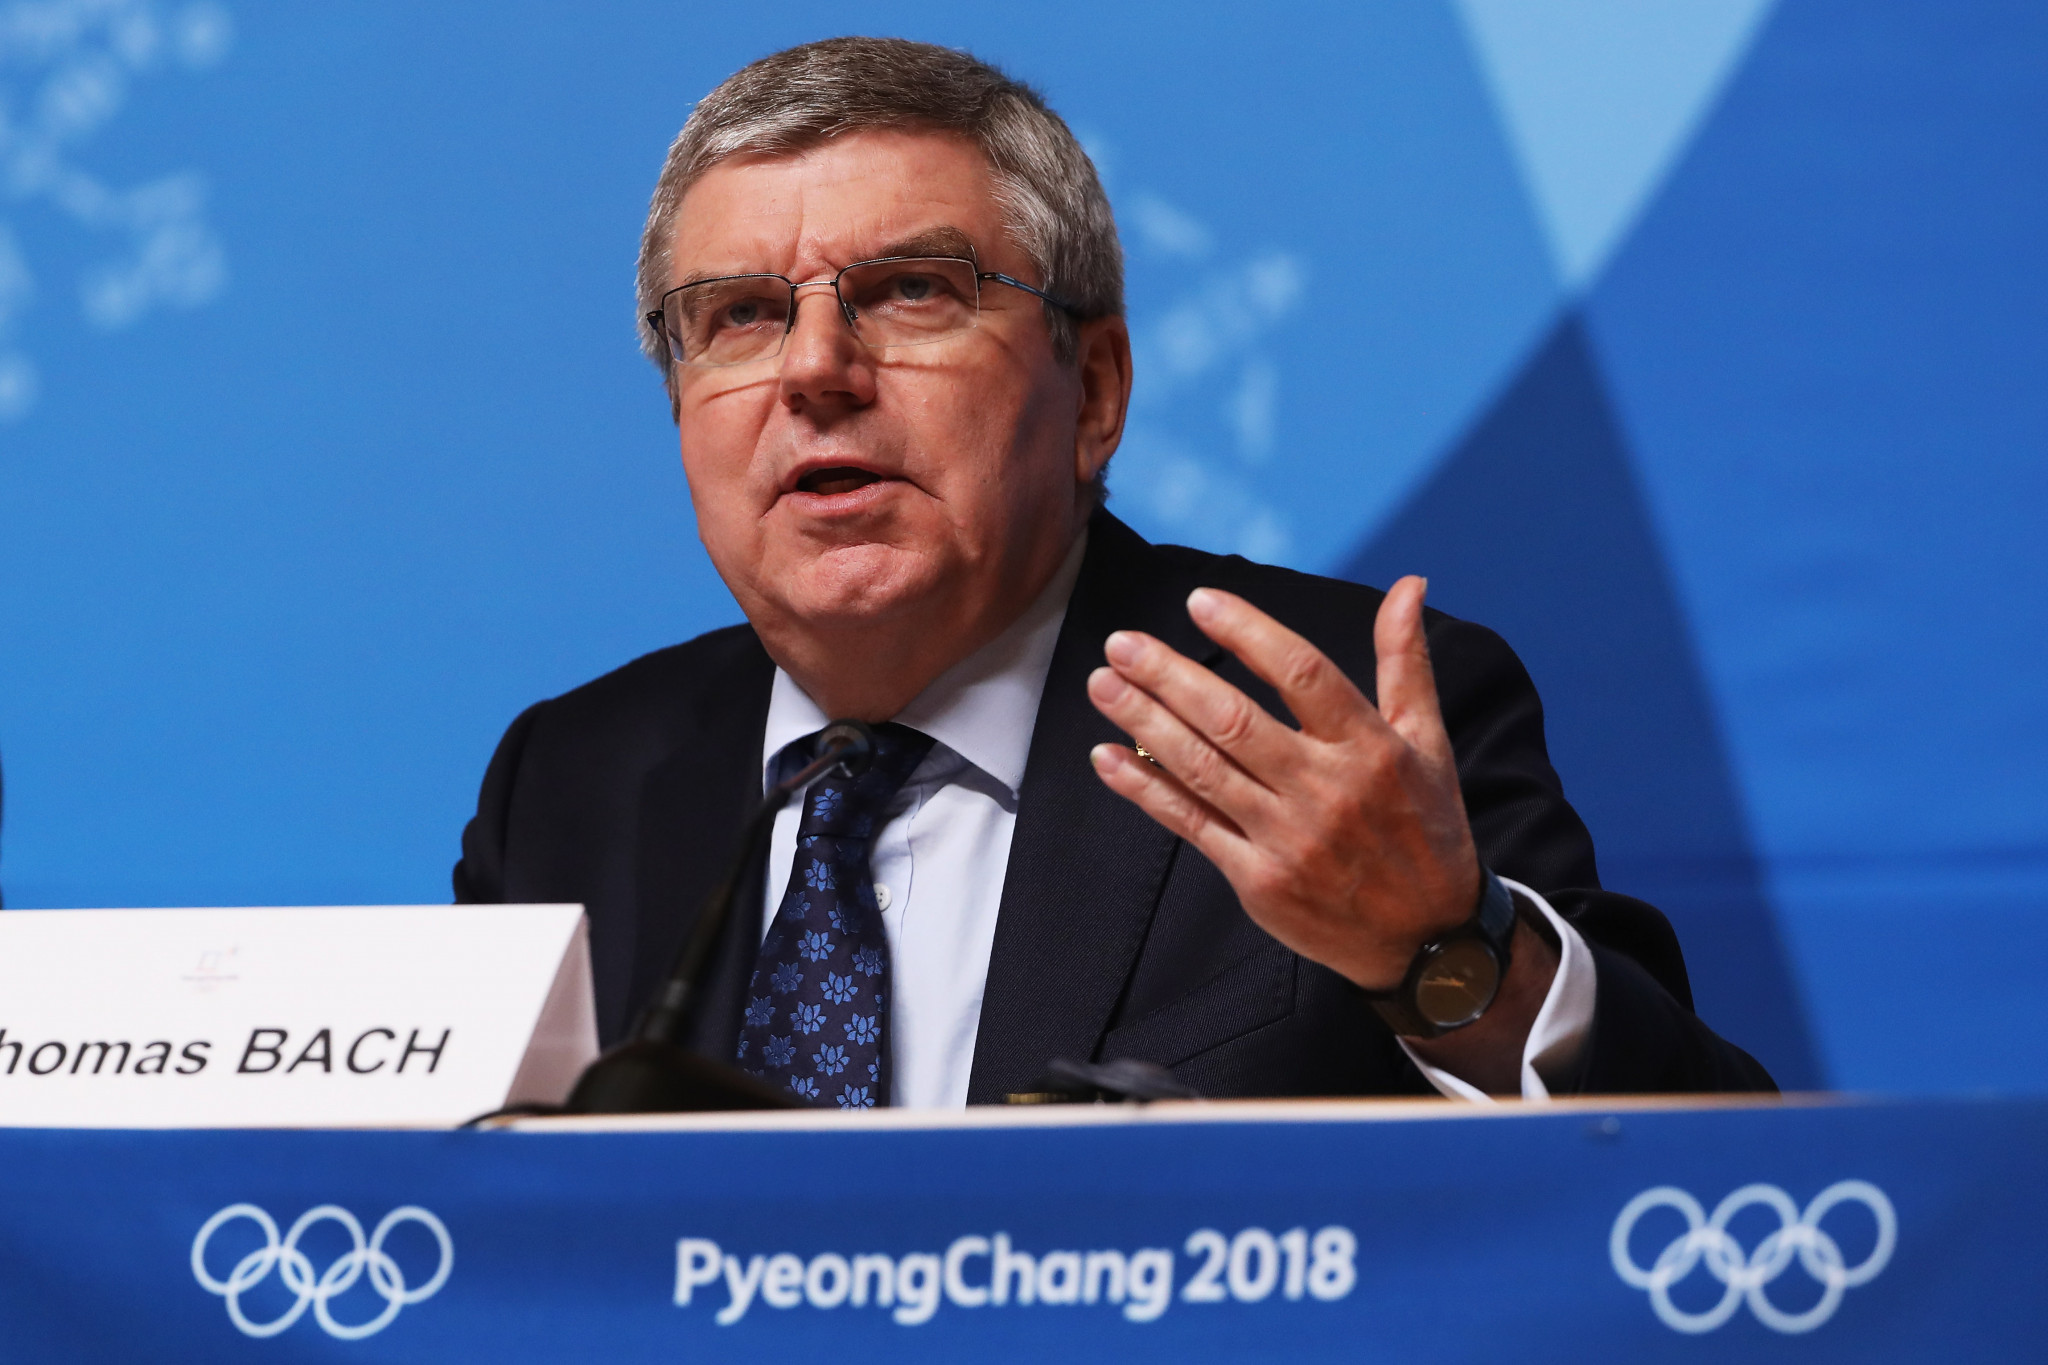 Russian doping questions dominated Thomas Bach's closing press conference at Pyeongchang 2018 ©Getty Images